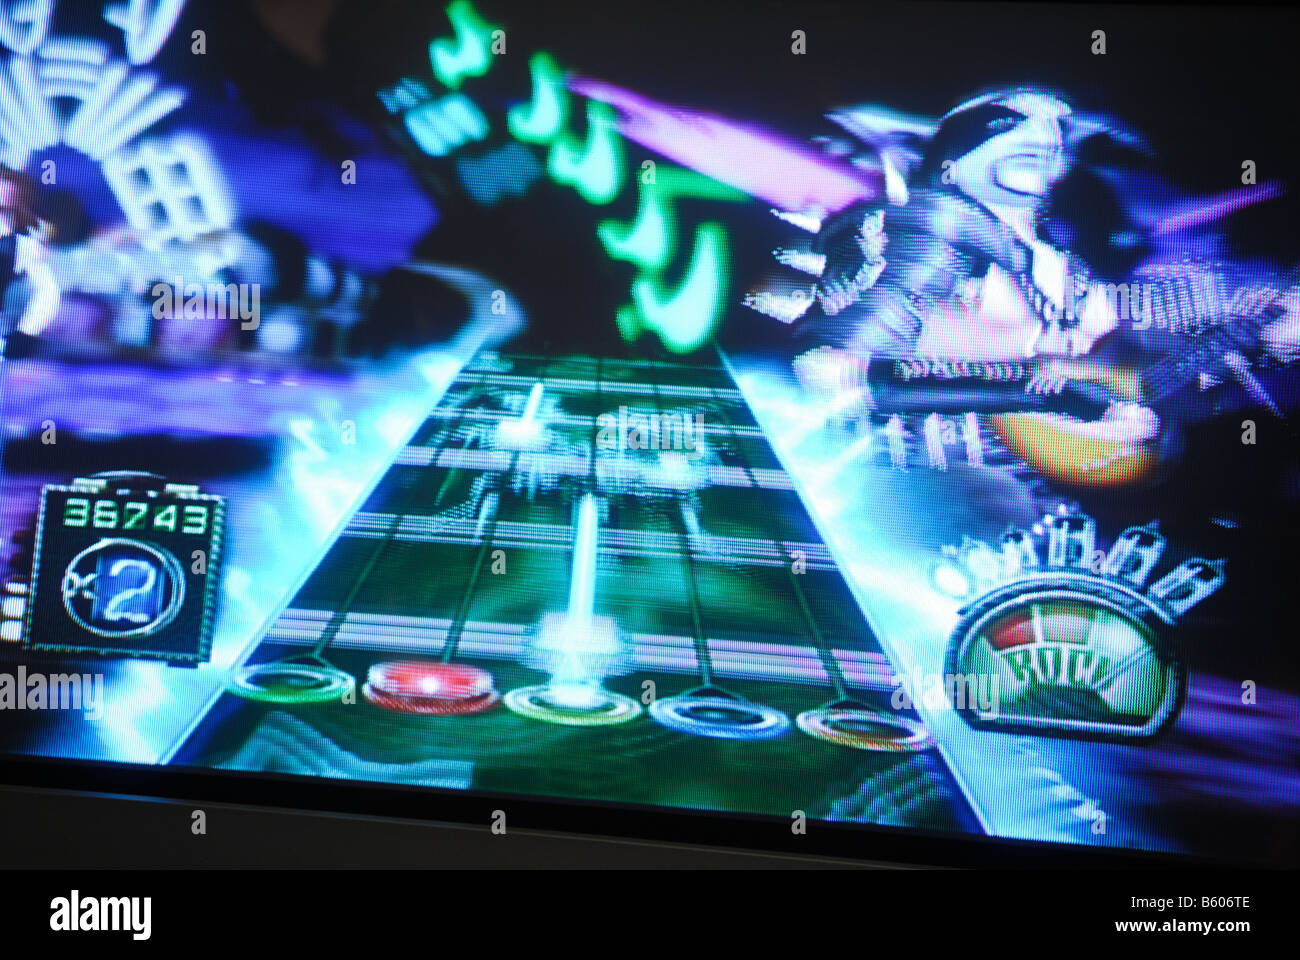 Guitar Hero Wii Game Nintendo. - Stock Image